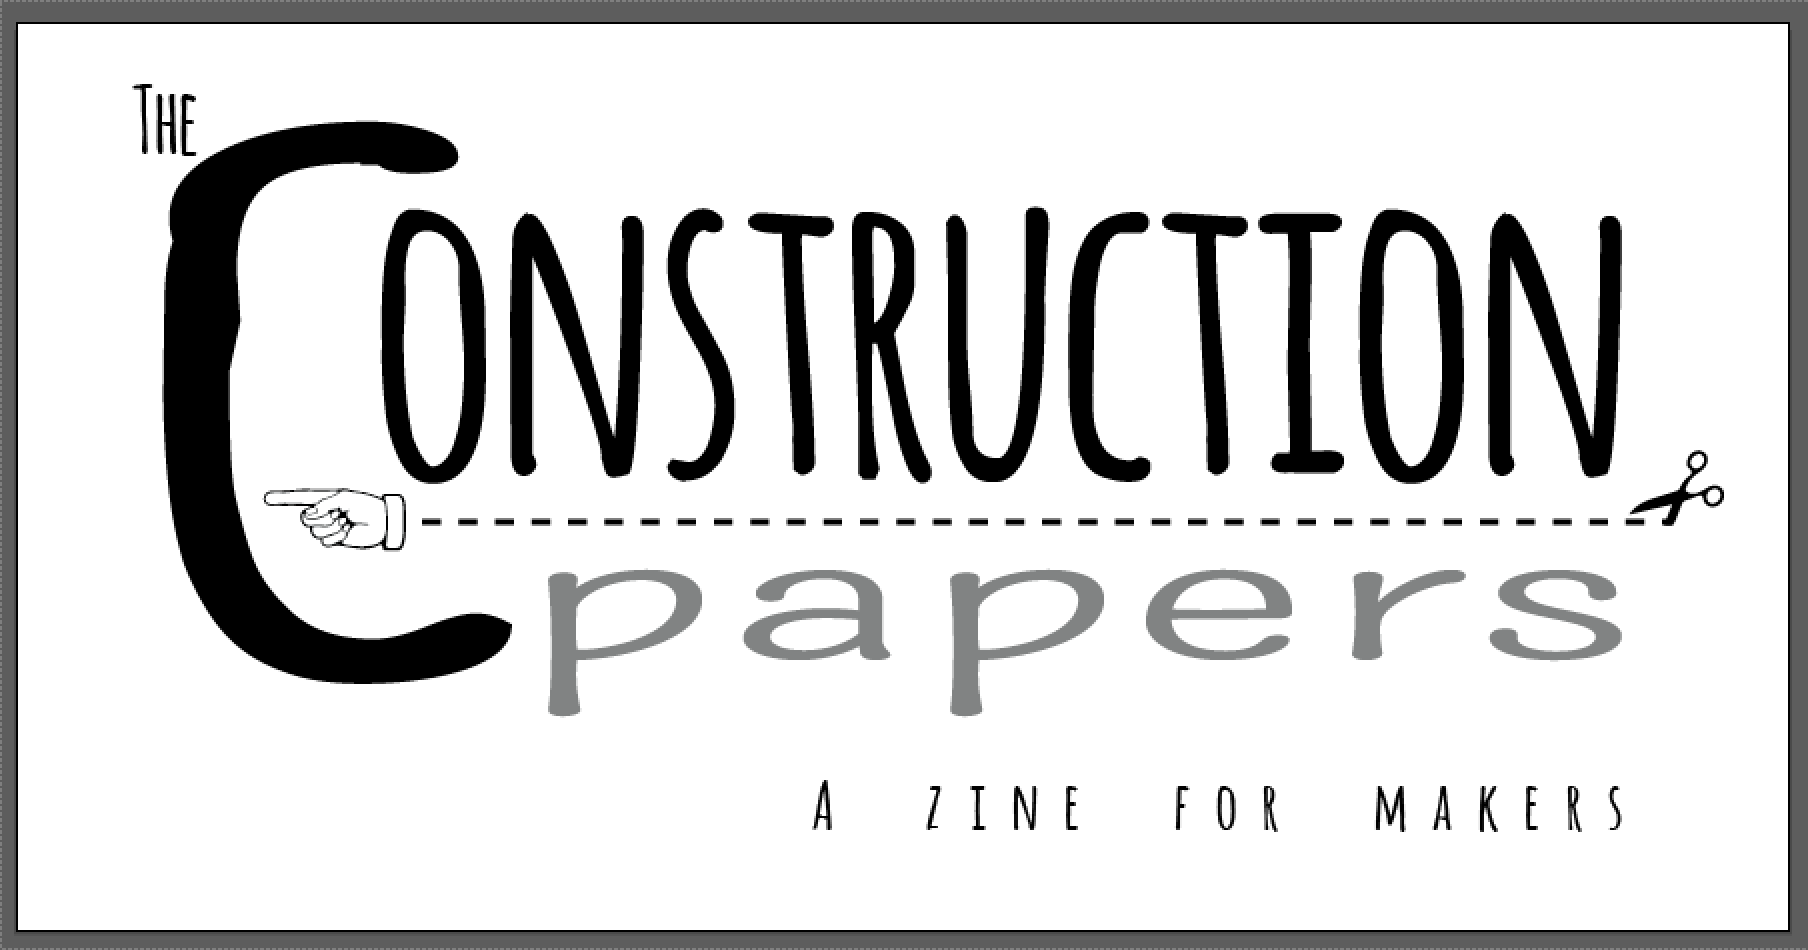 4 Issues of The Construction Papers: A Zine for Makers